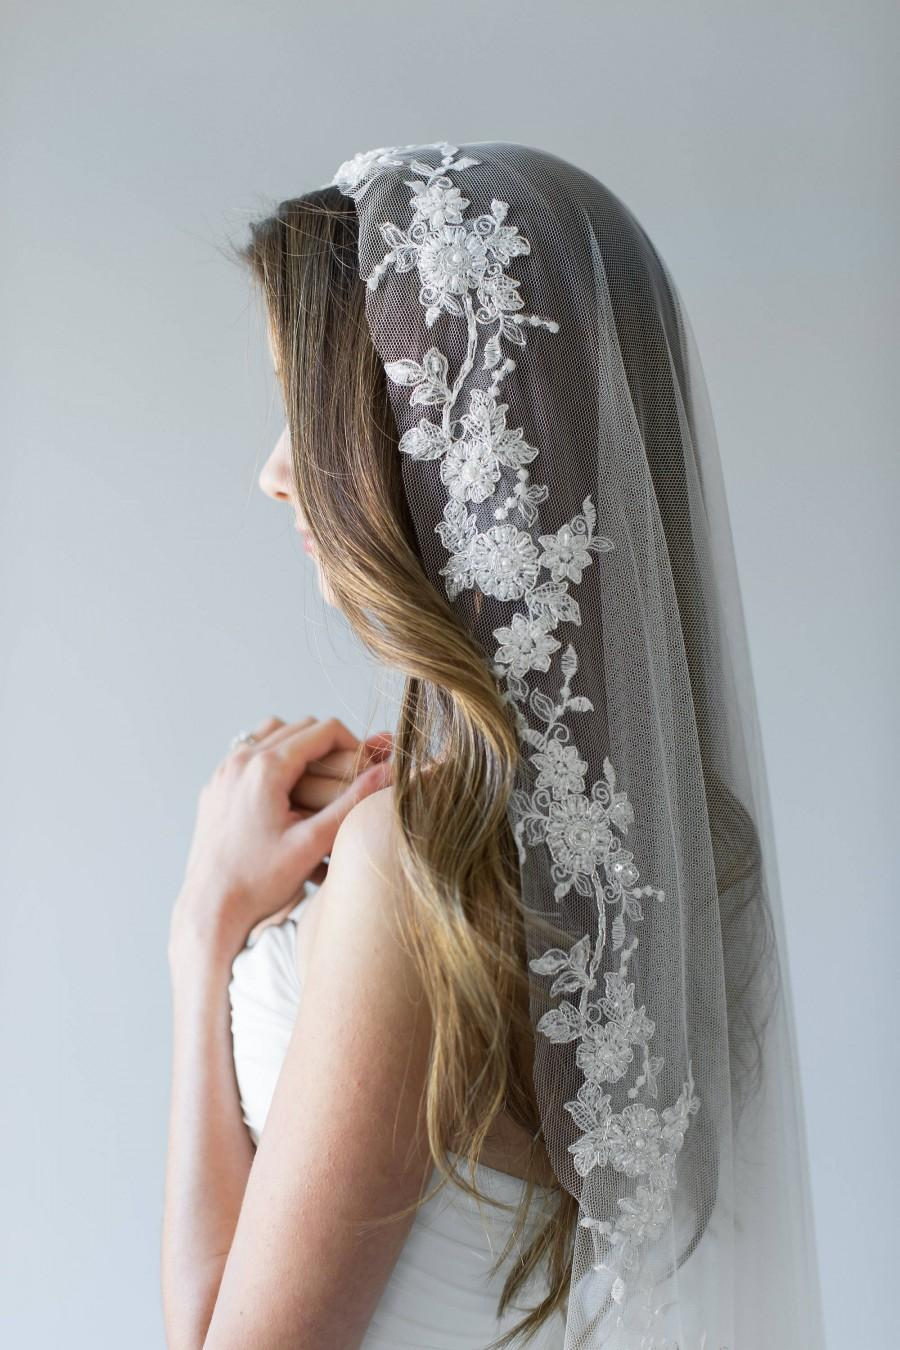 Mariage - Mantilla Veil, Modern Veil, Embroidered Veil, Modern Mantilla Veil, Lace Mantilla Veil, Ivory Veil, Silver Lace Veil, Lace Circle Veil HOLLY